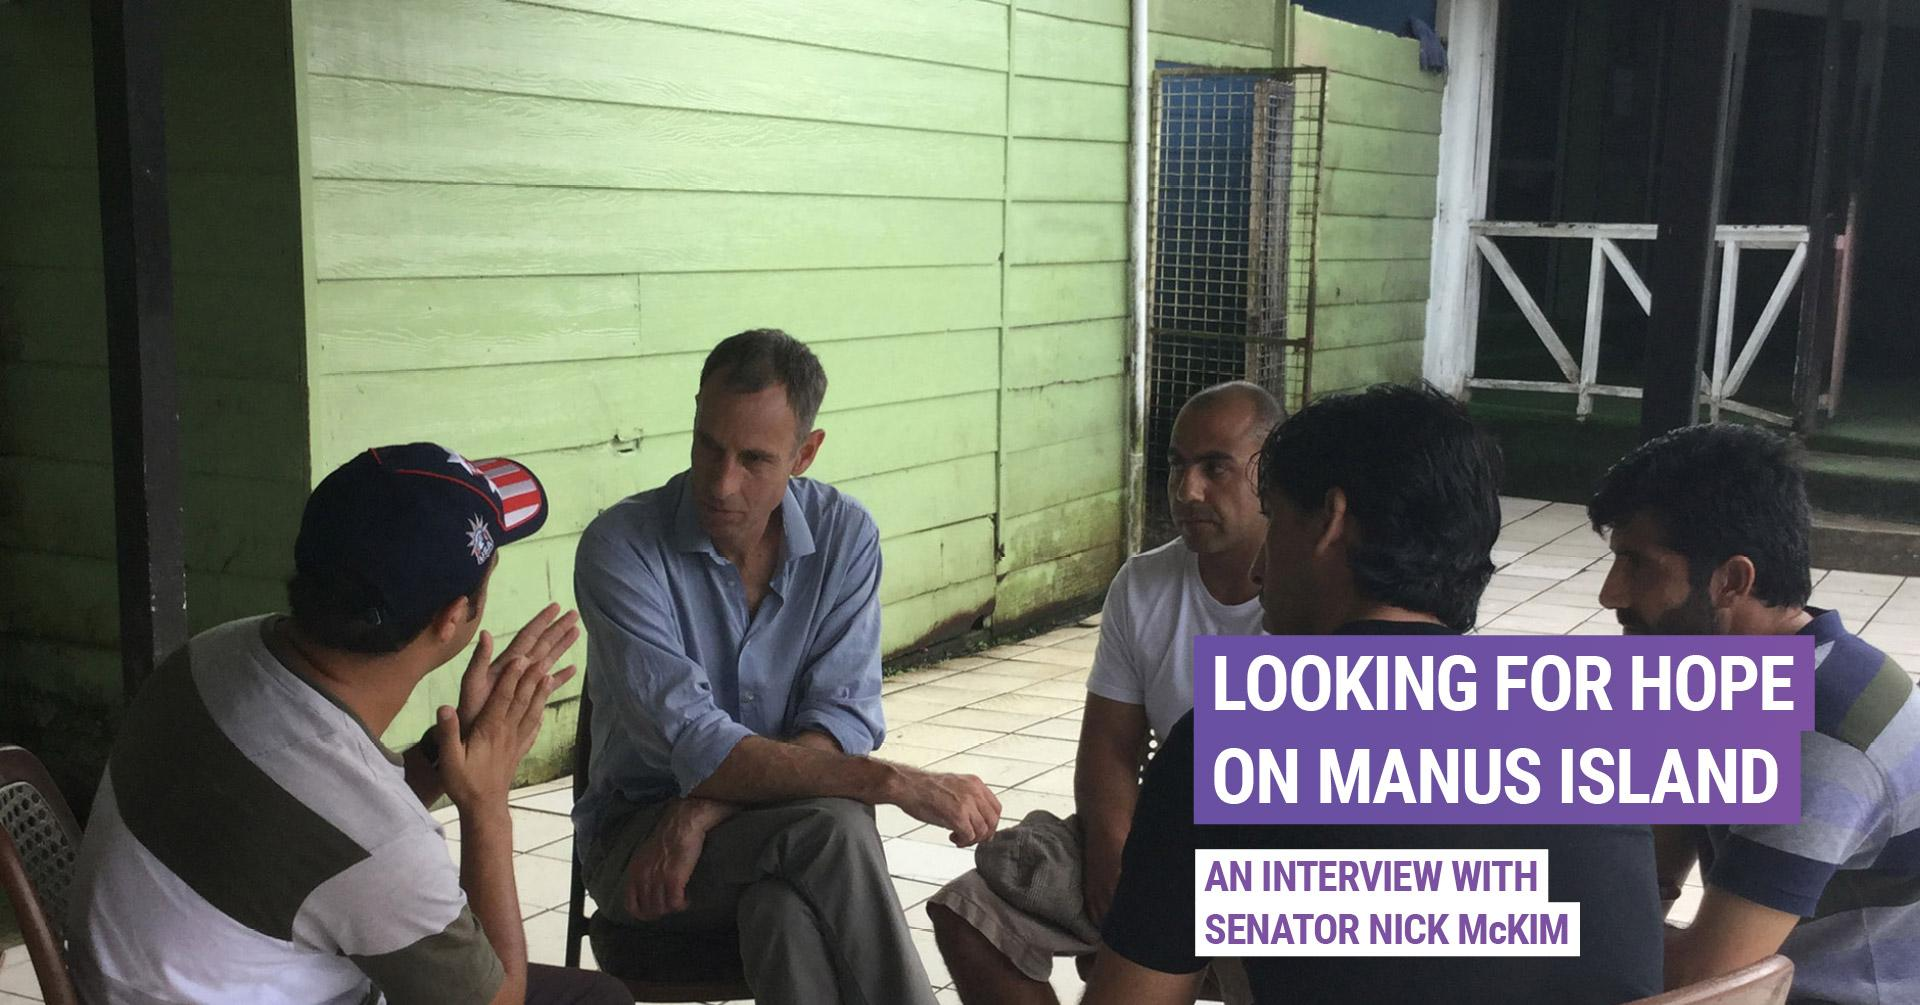 Looking for hope on Manus Island — interview with Nick McKim